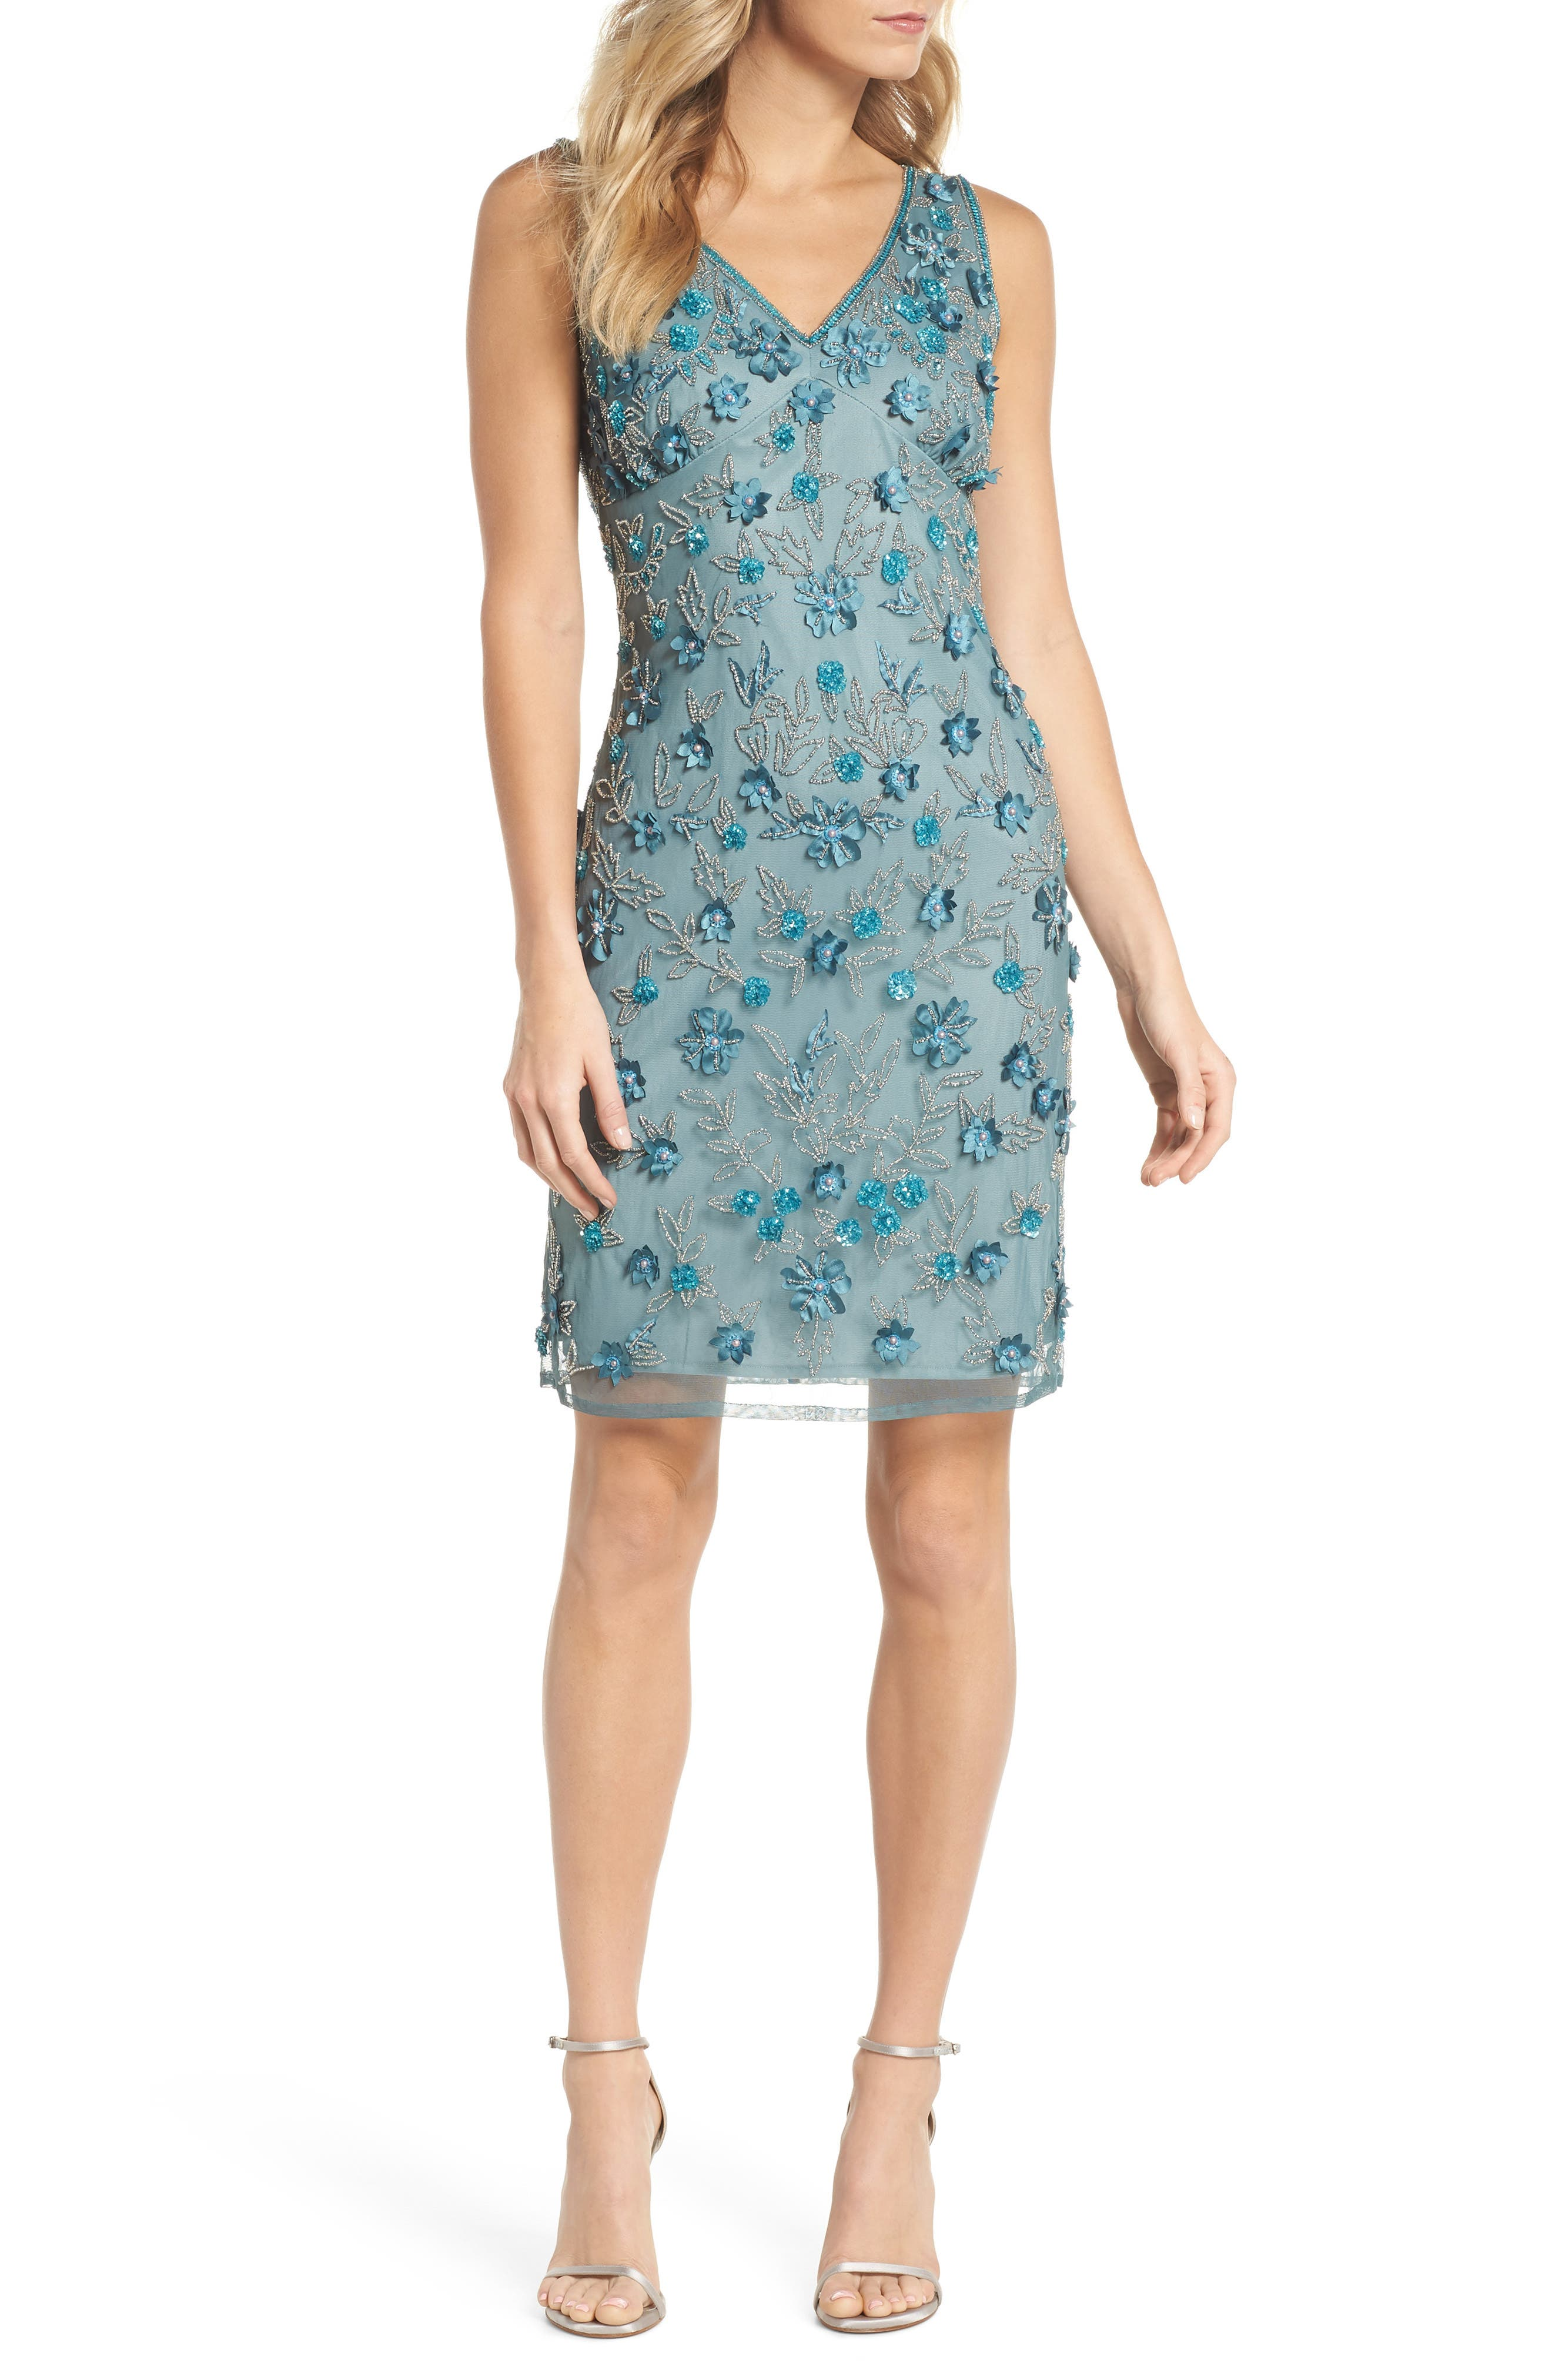 3D Floral Embellished Sheath Dress,                             Main thumbnail 1, color,                             400